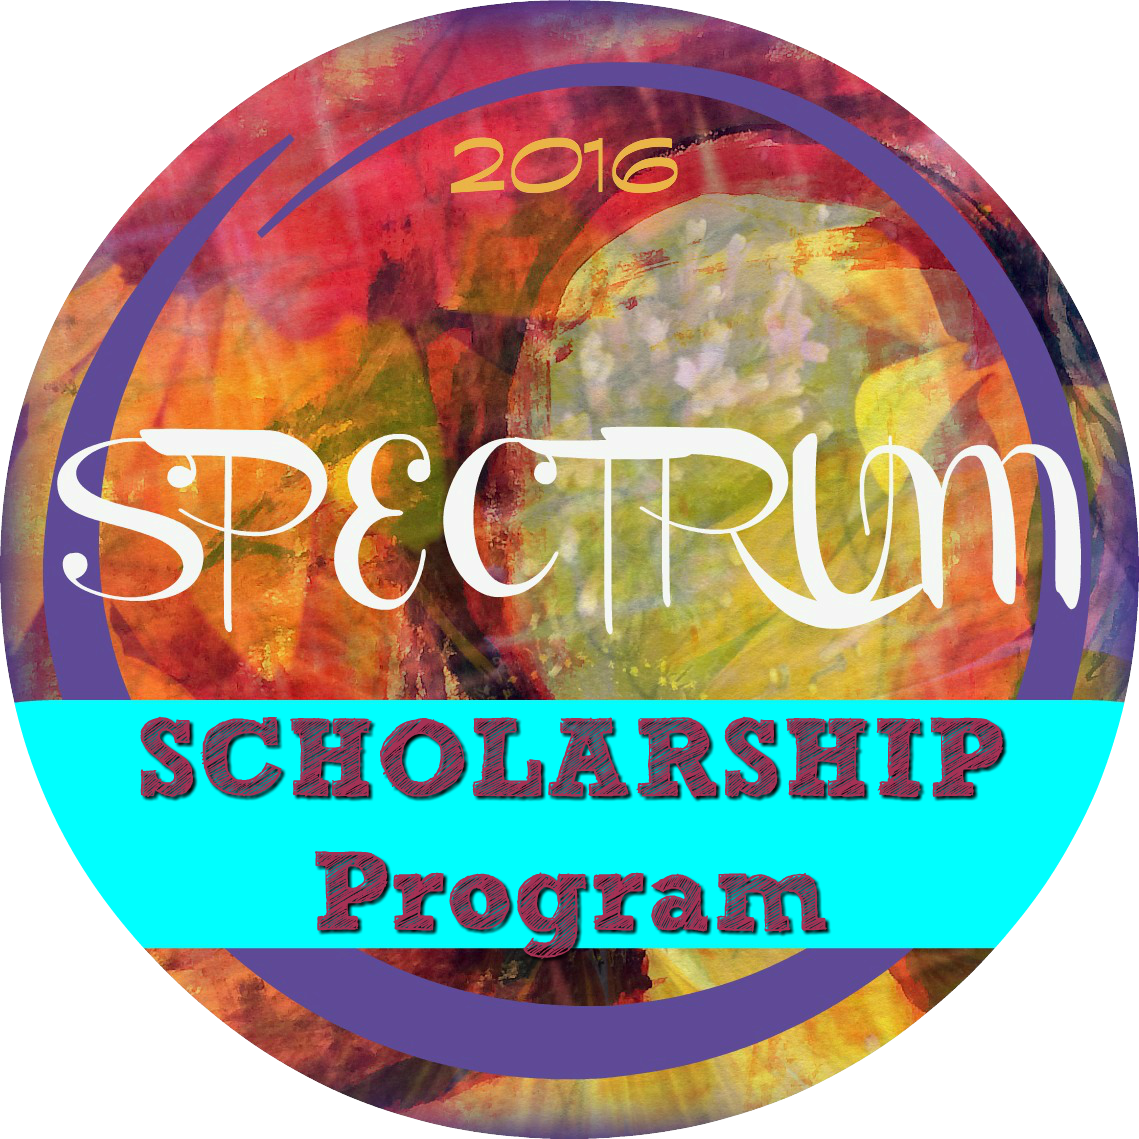 SP16roundSCHOLARSHIPS